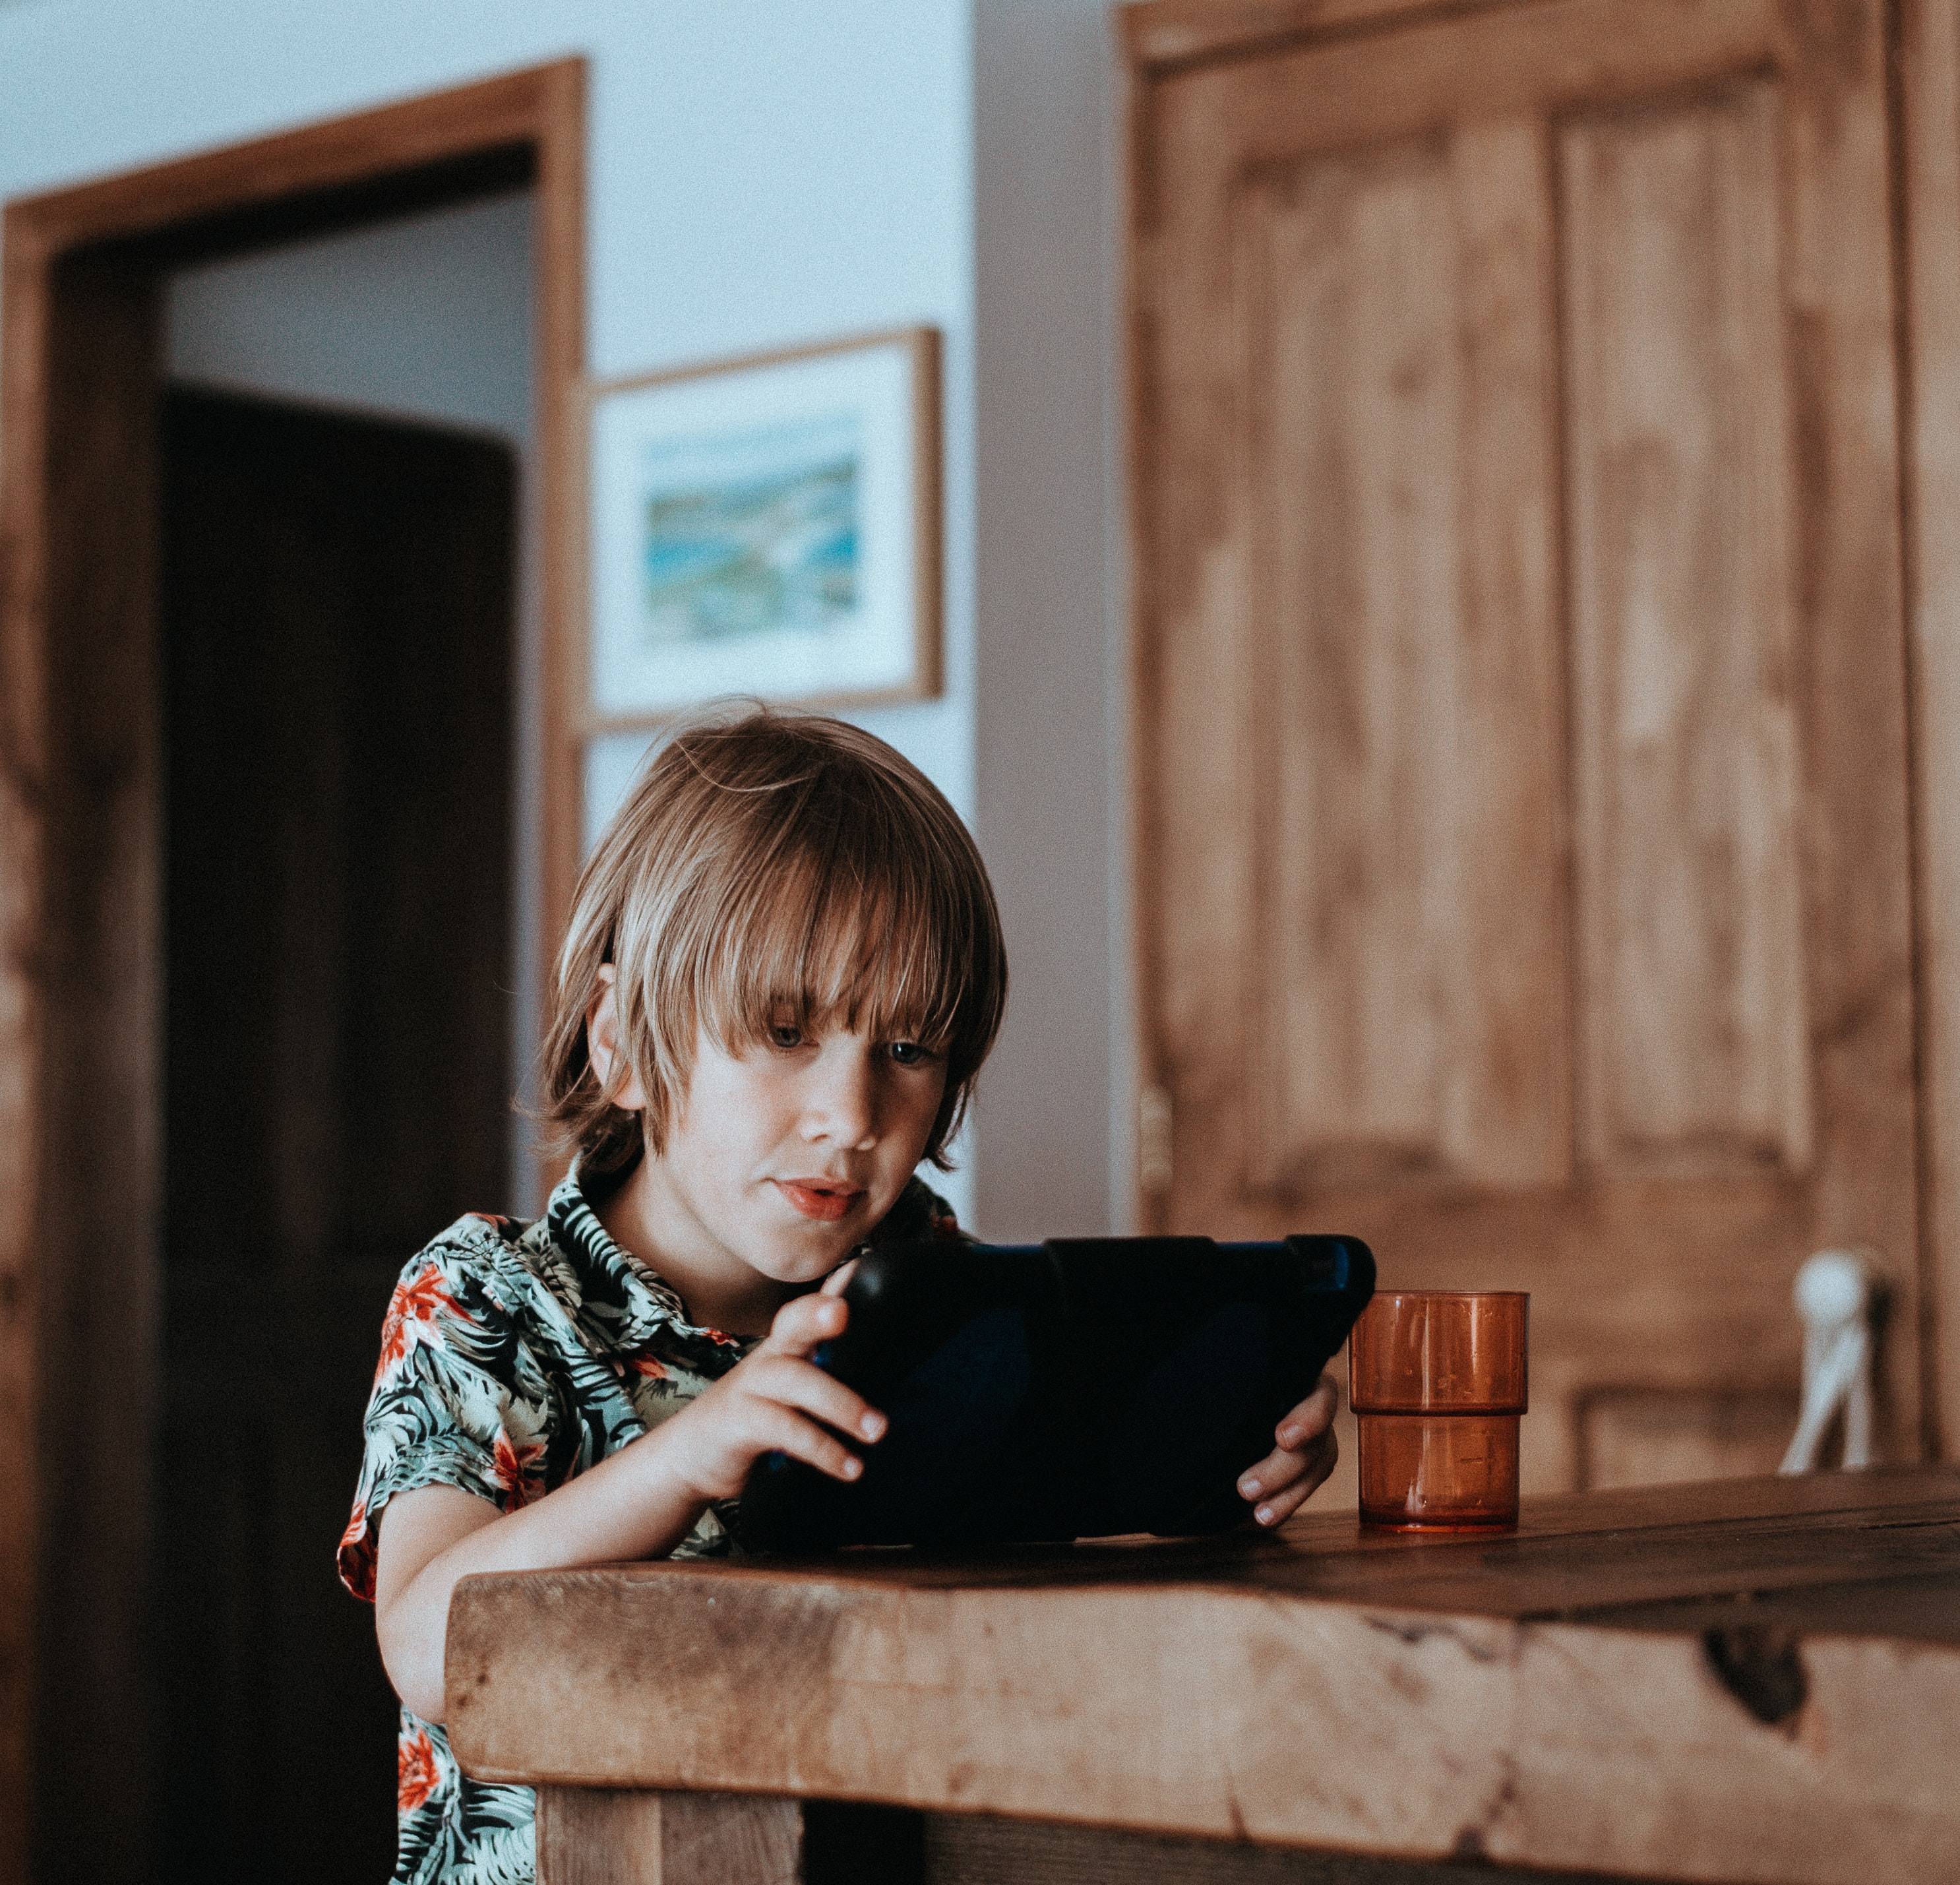 selective focus of child using tablet computer on table